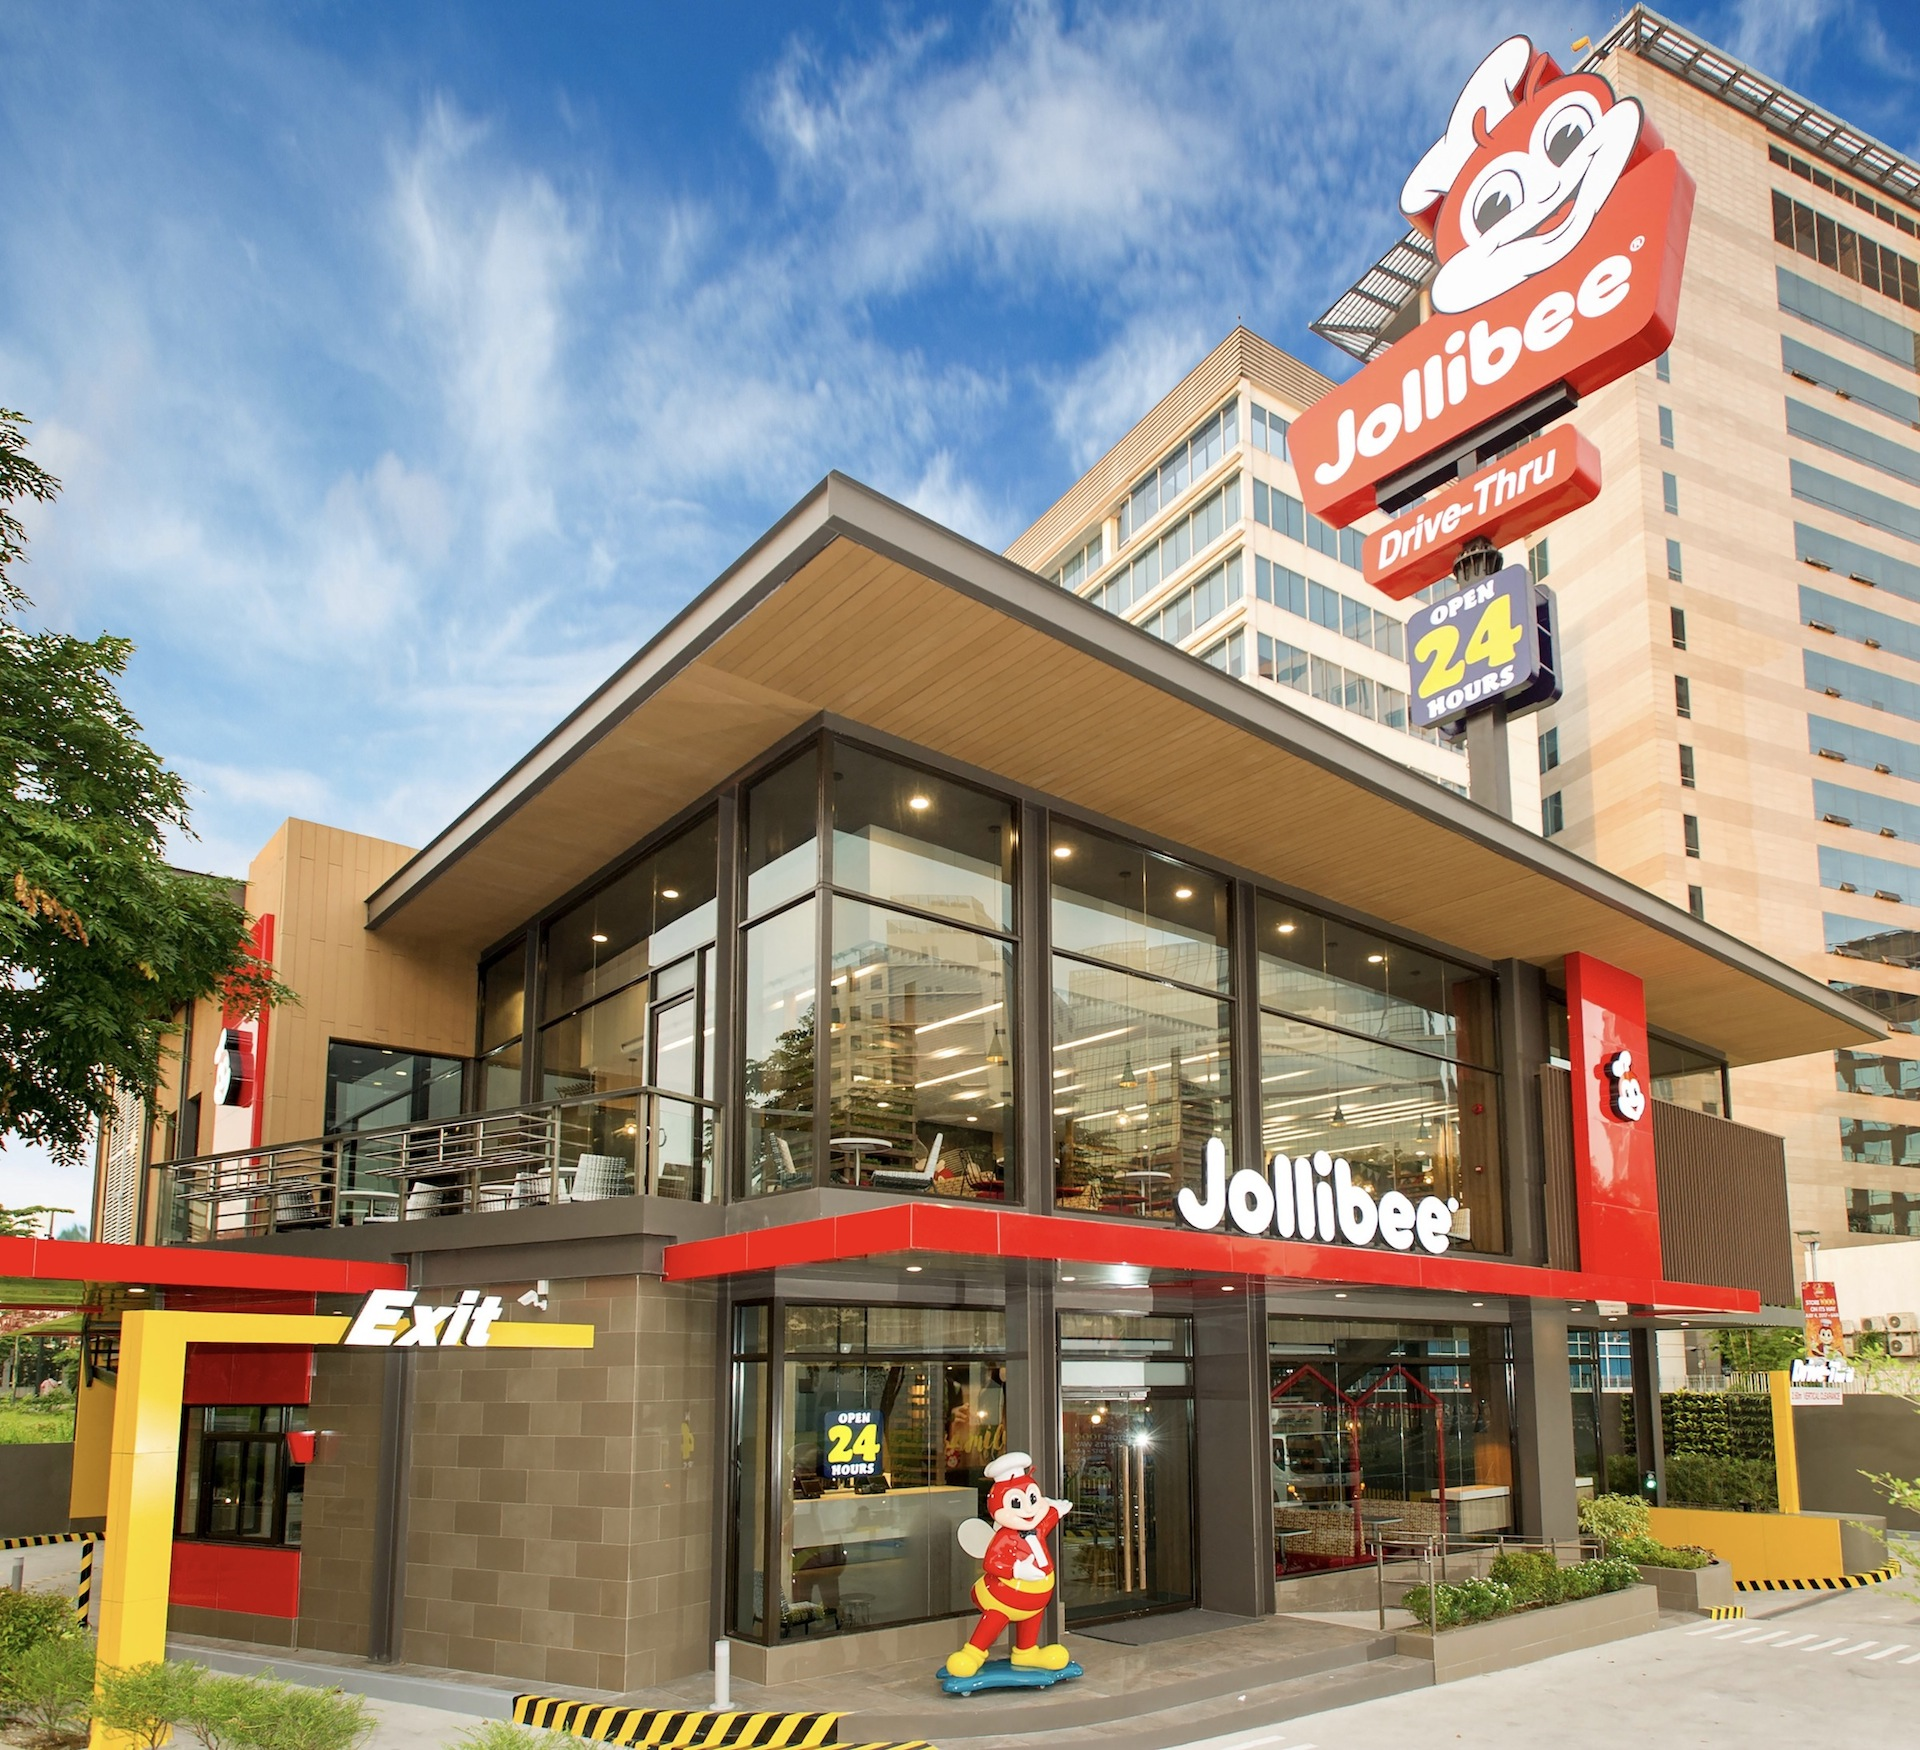 most effective sales promotion used by jollibee food cirporation